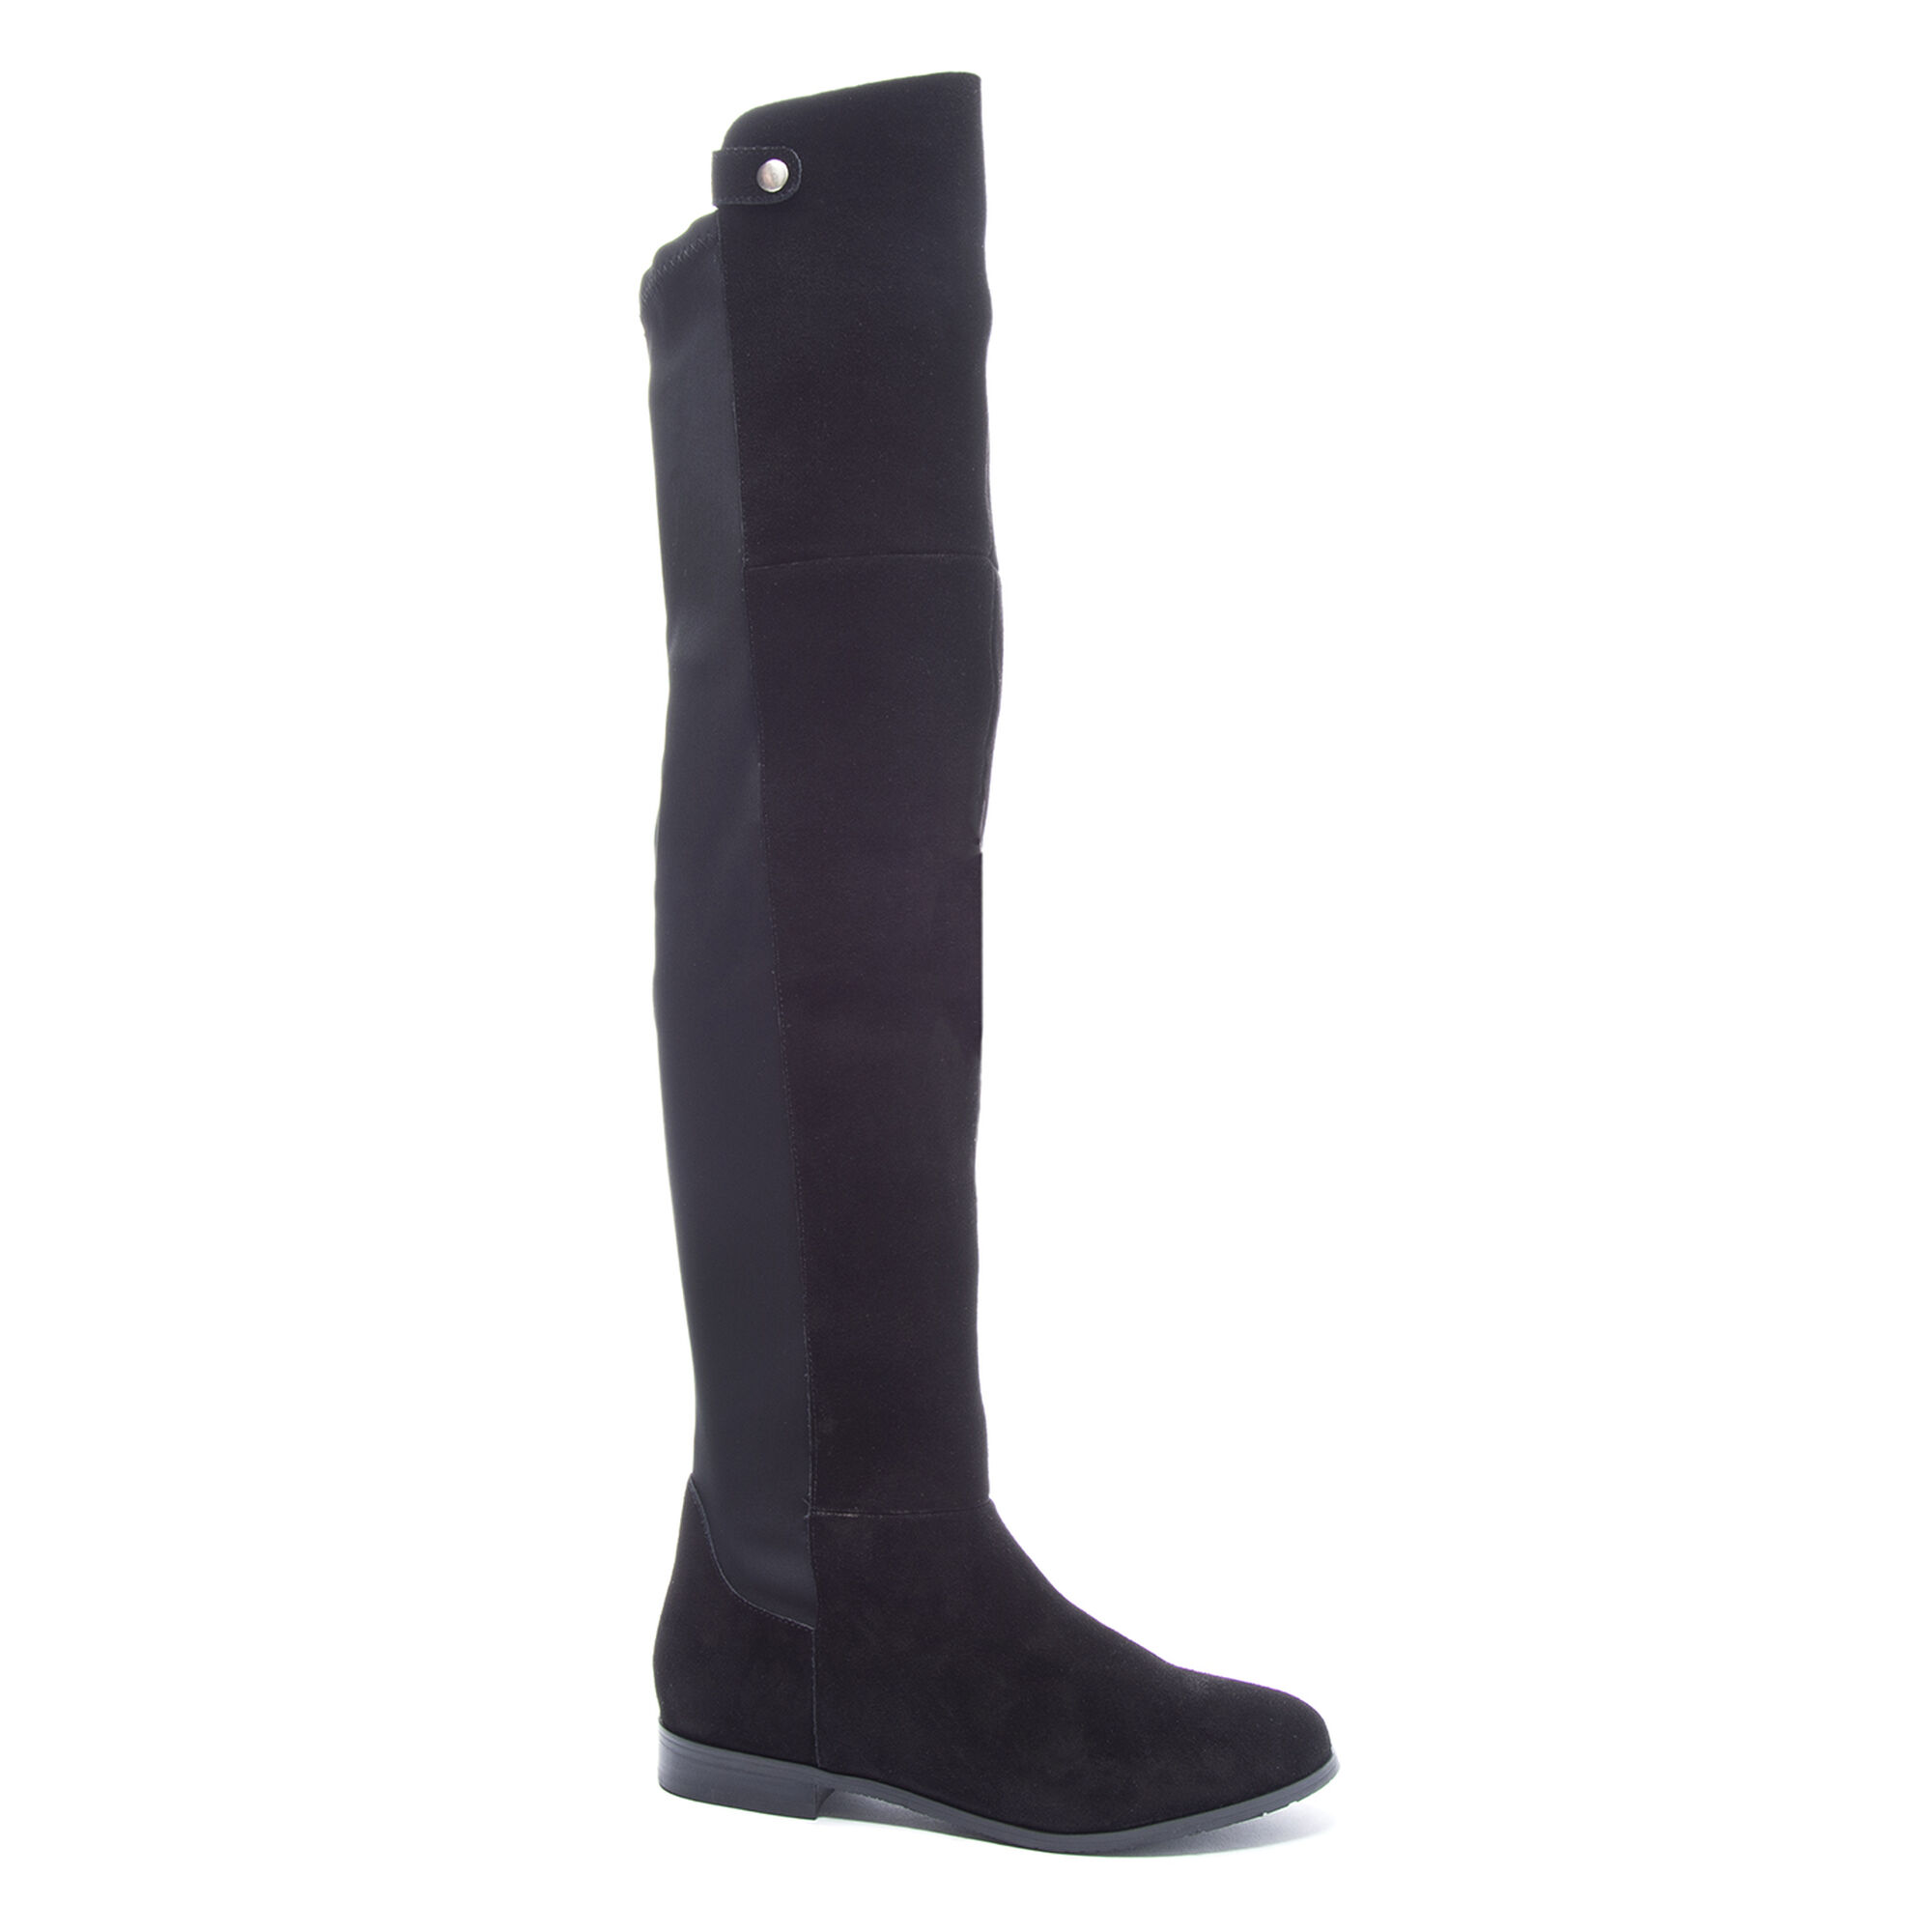 243a4ed450f Robin Over the Knee Thigh High Suede Boots